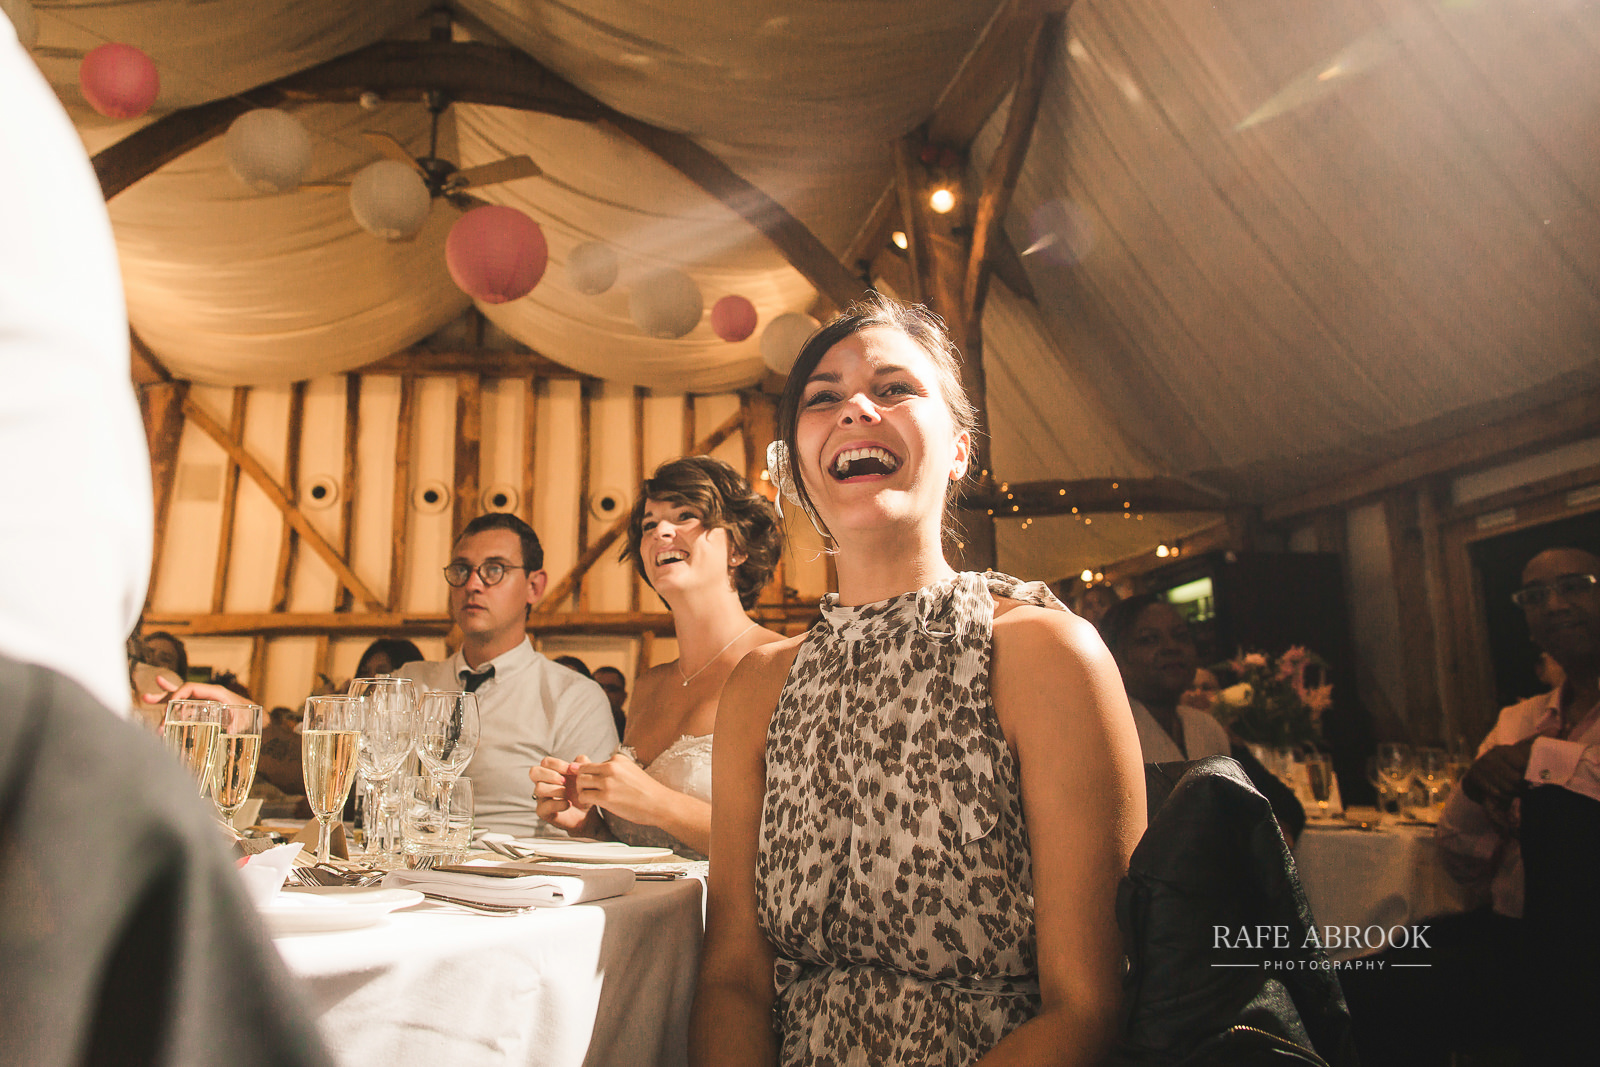 south farm wedding royston hertfordshire wedding photographer rafe abrook photography-1829.jpg